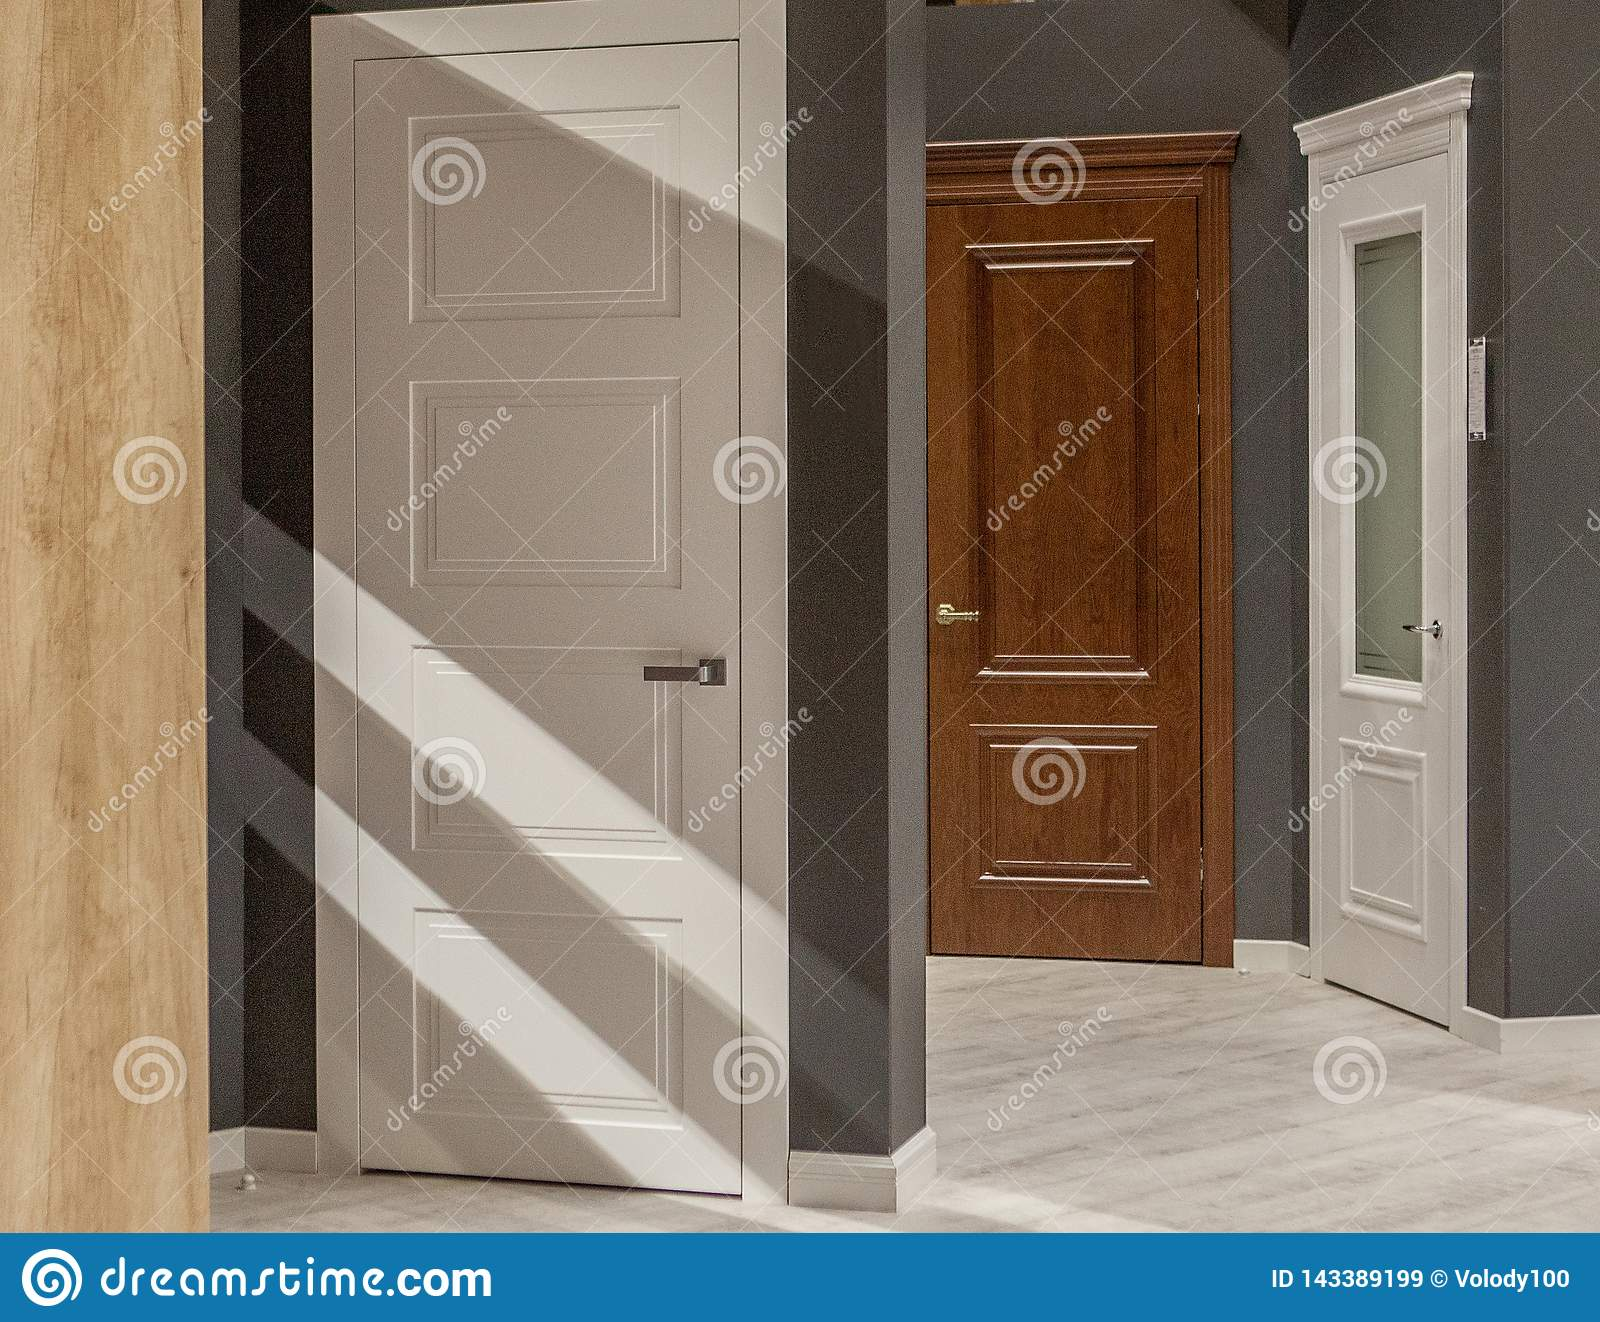 Interior Doors For Sale In A Specialized Store Stock Image Image Of Choice Business 143389199